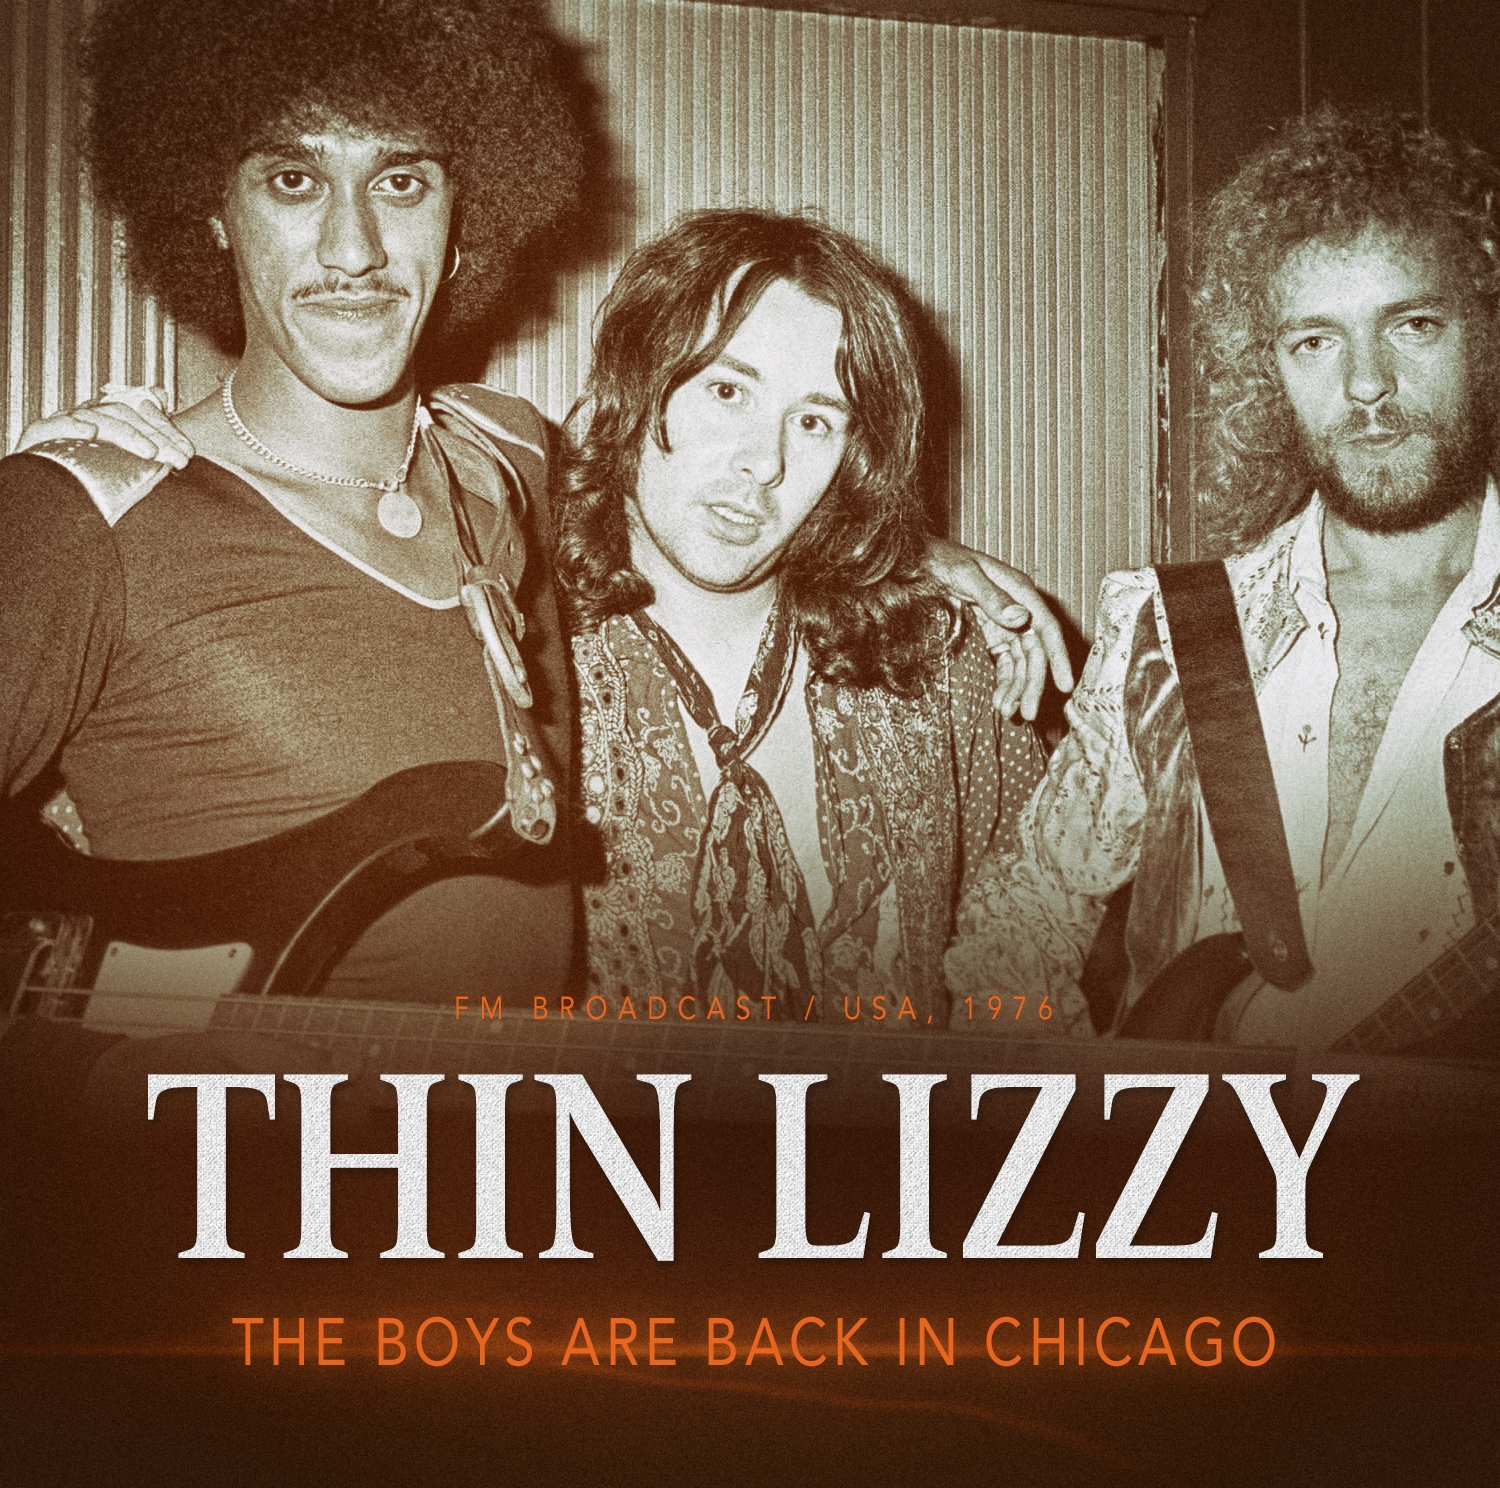 The Boys Are Back In Chicago 1976